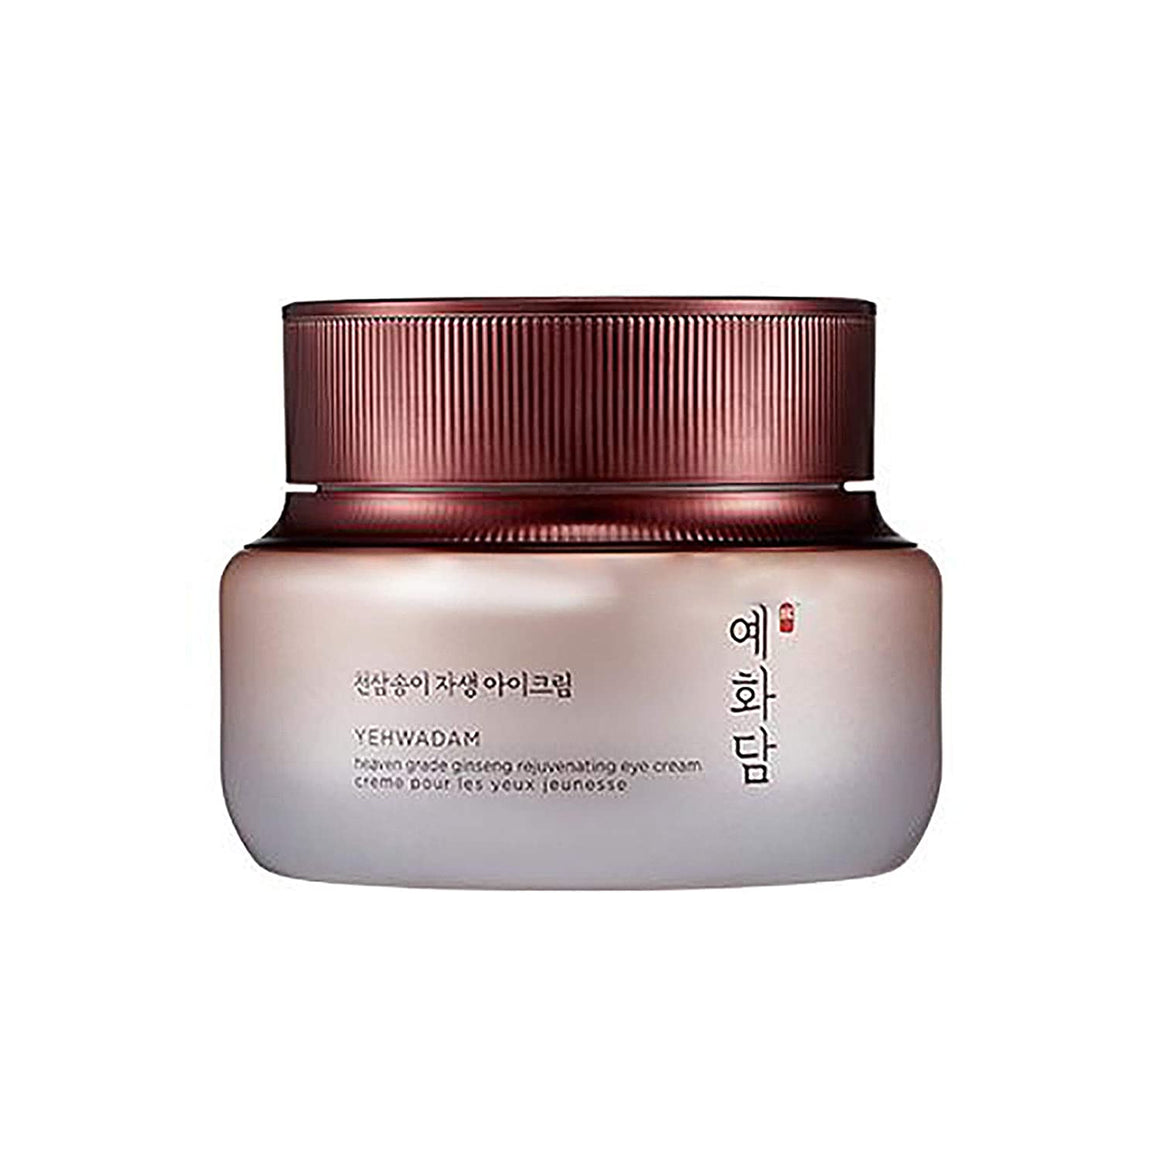 YEHWADAM HEAVEN GRADE GINSENG REJUVENATING EYE CREAM- 25ML